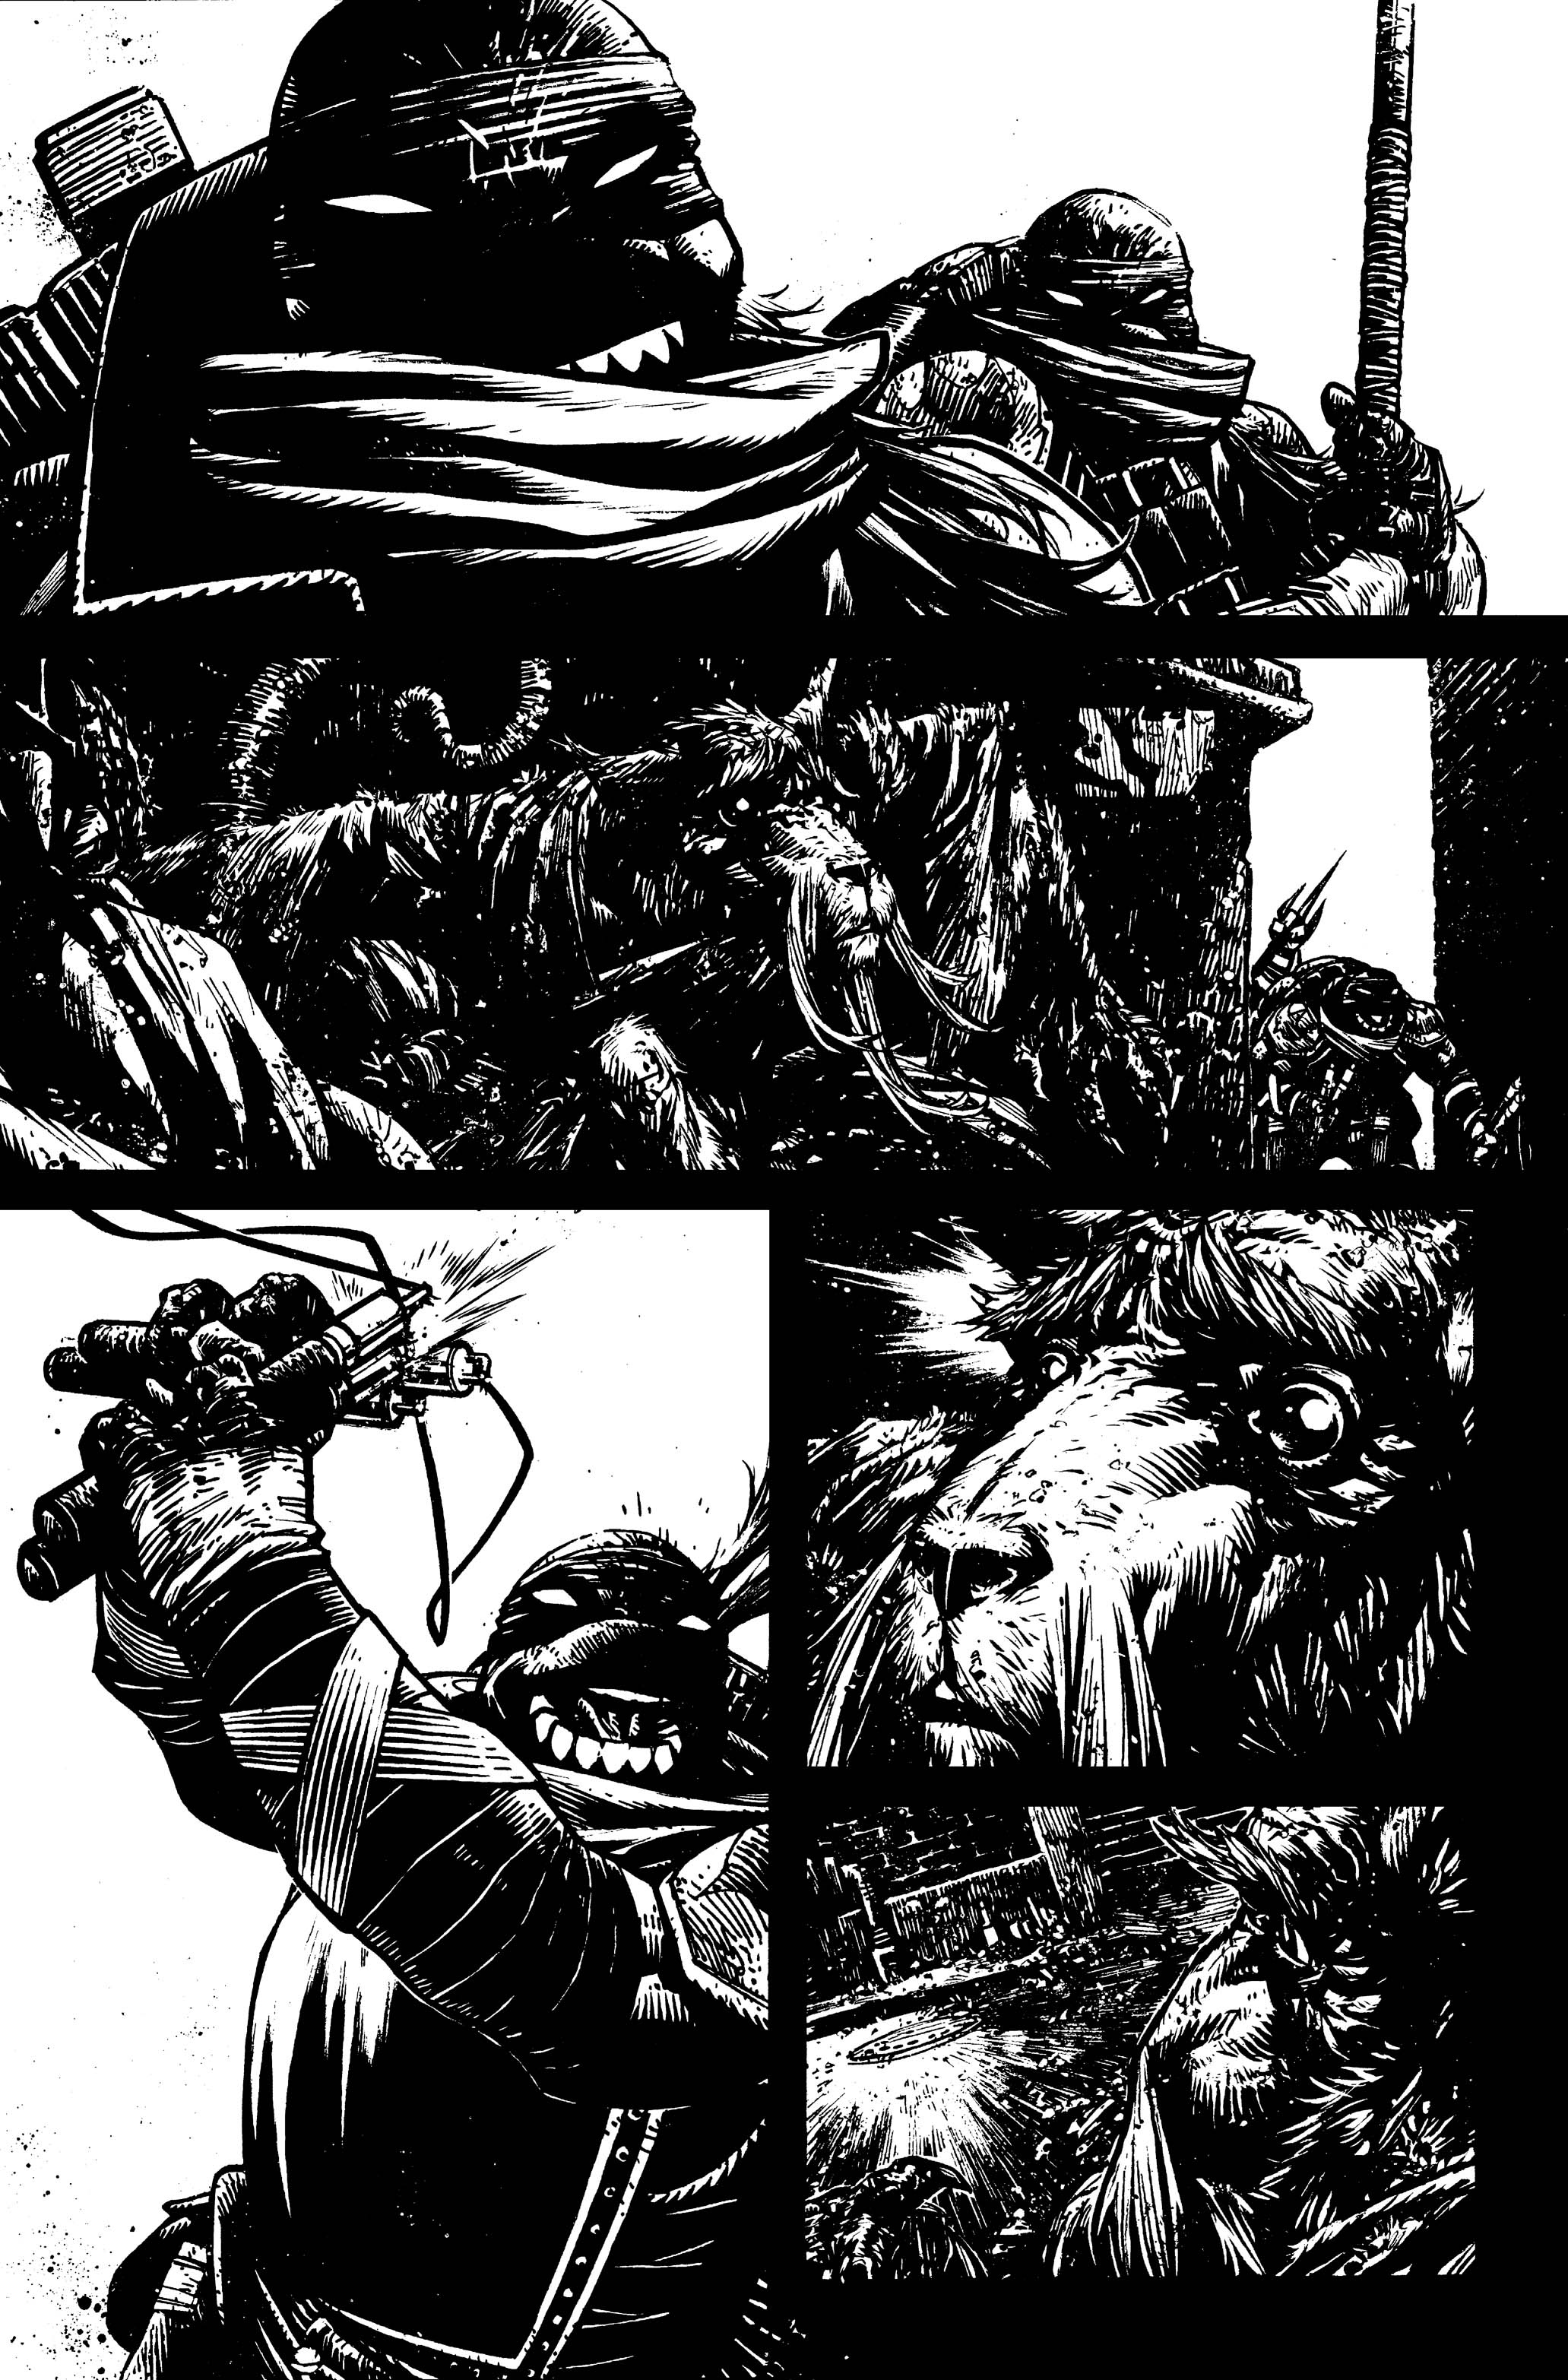 TMNT page 6 inks low res.jpg